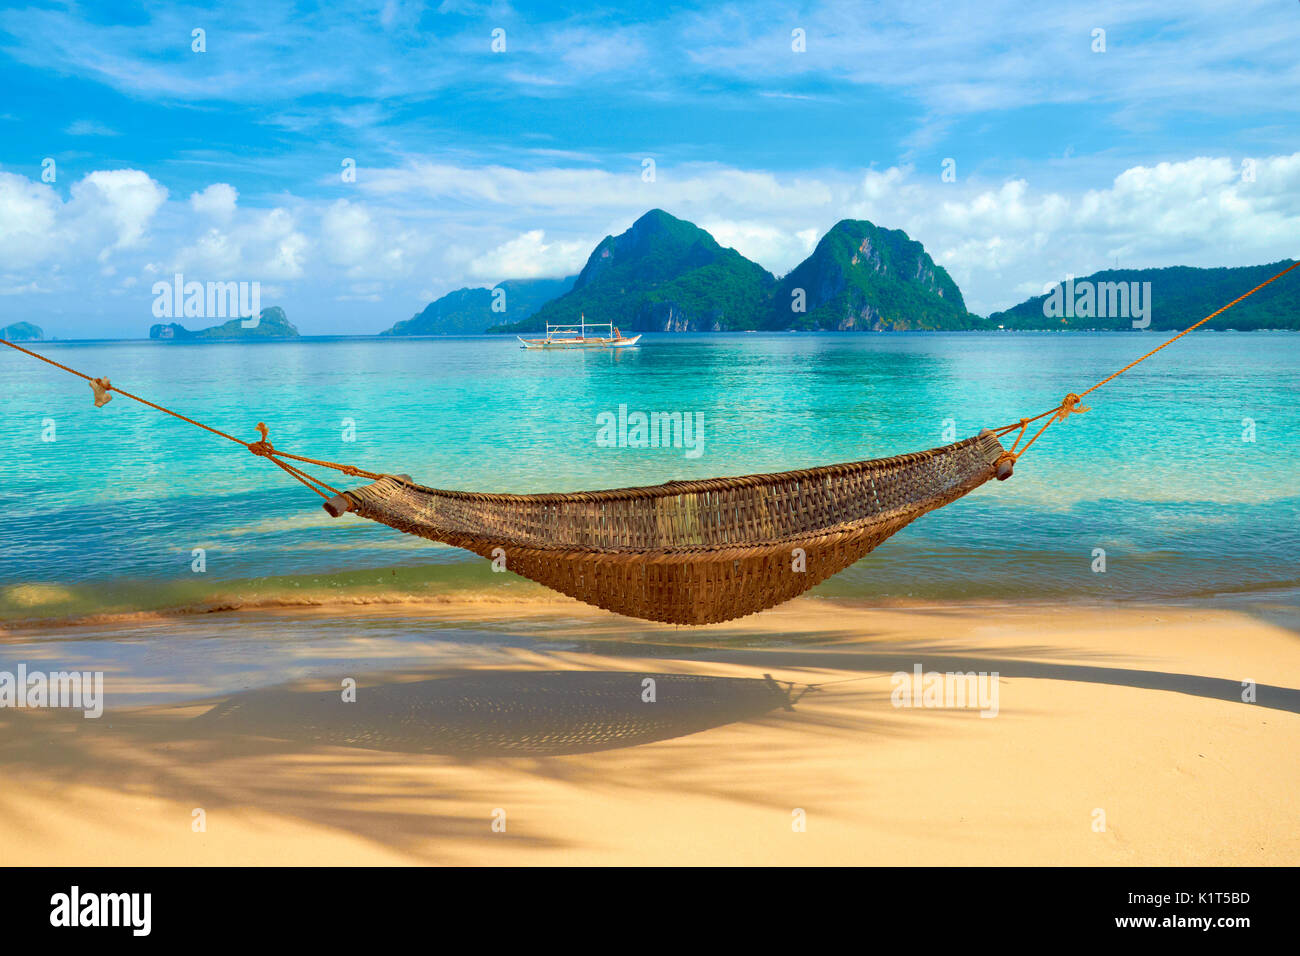 A hammock at the beach - El Nido, Philippines - Stock Image